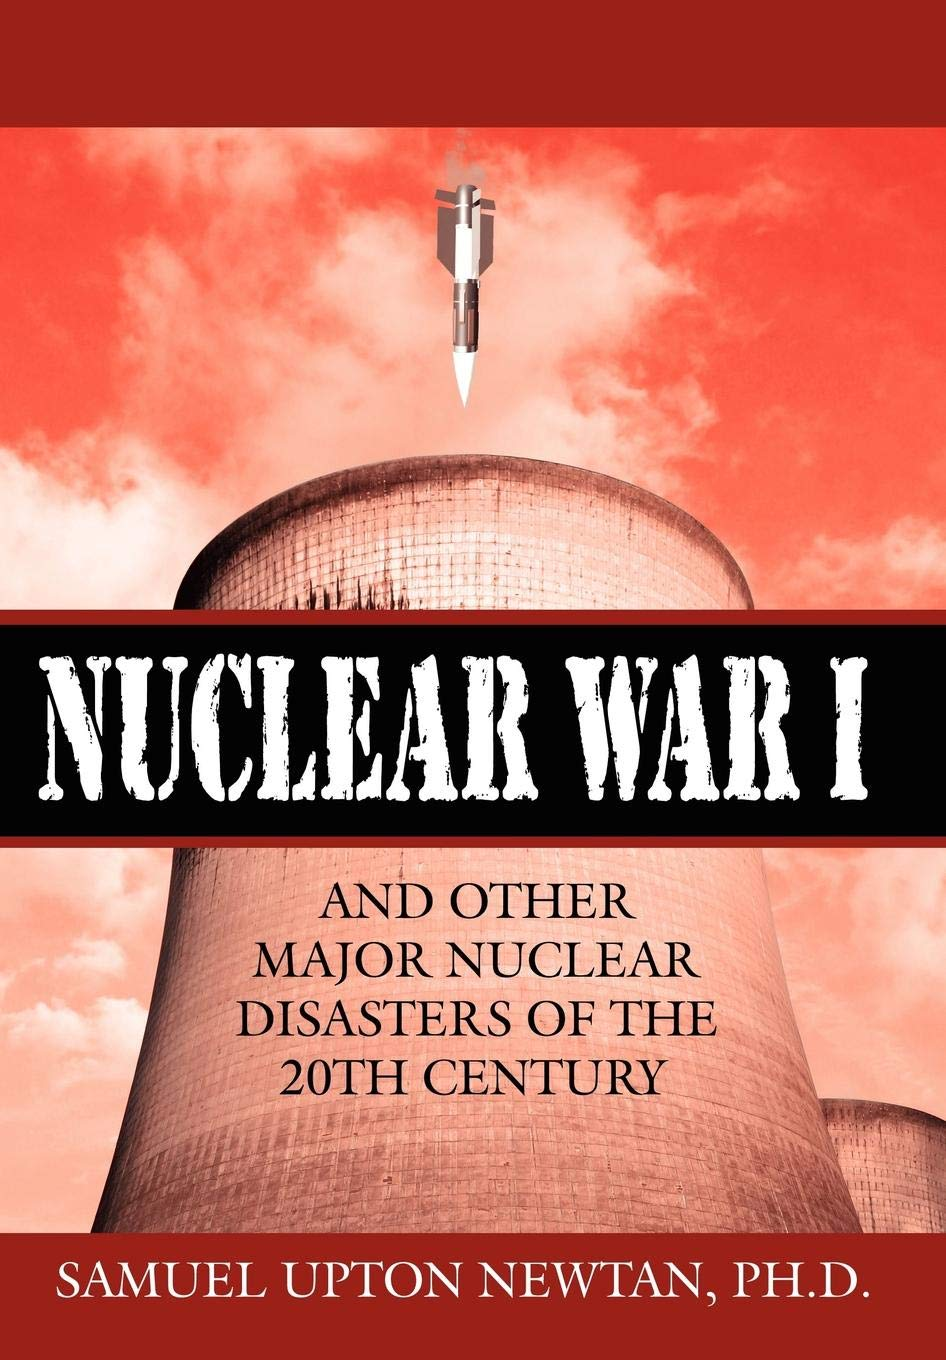 Image OfNuclear War I And Other Major Nuclear Disasters Of The 20th Century